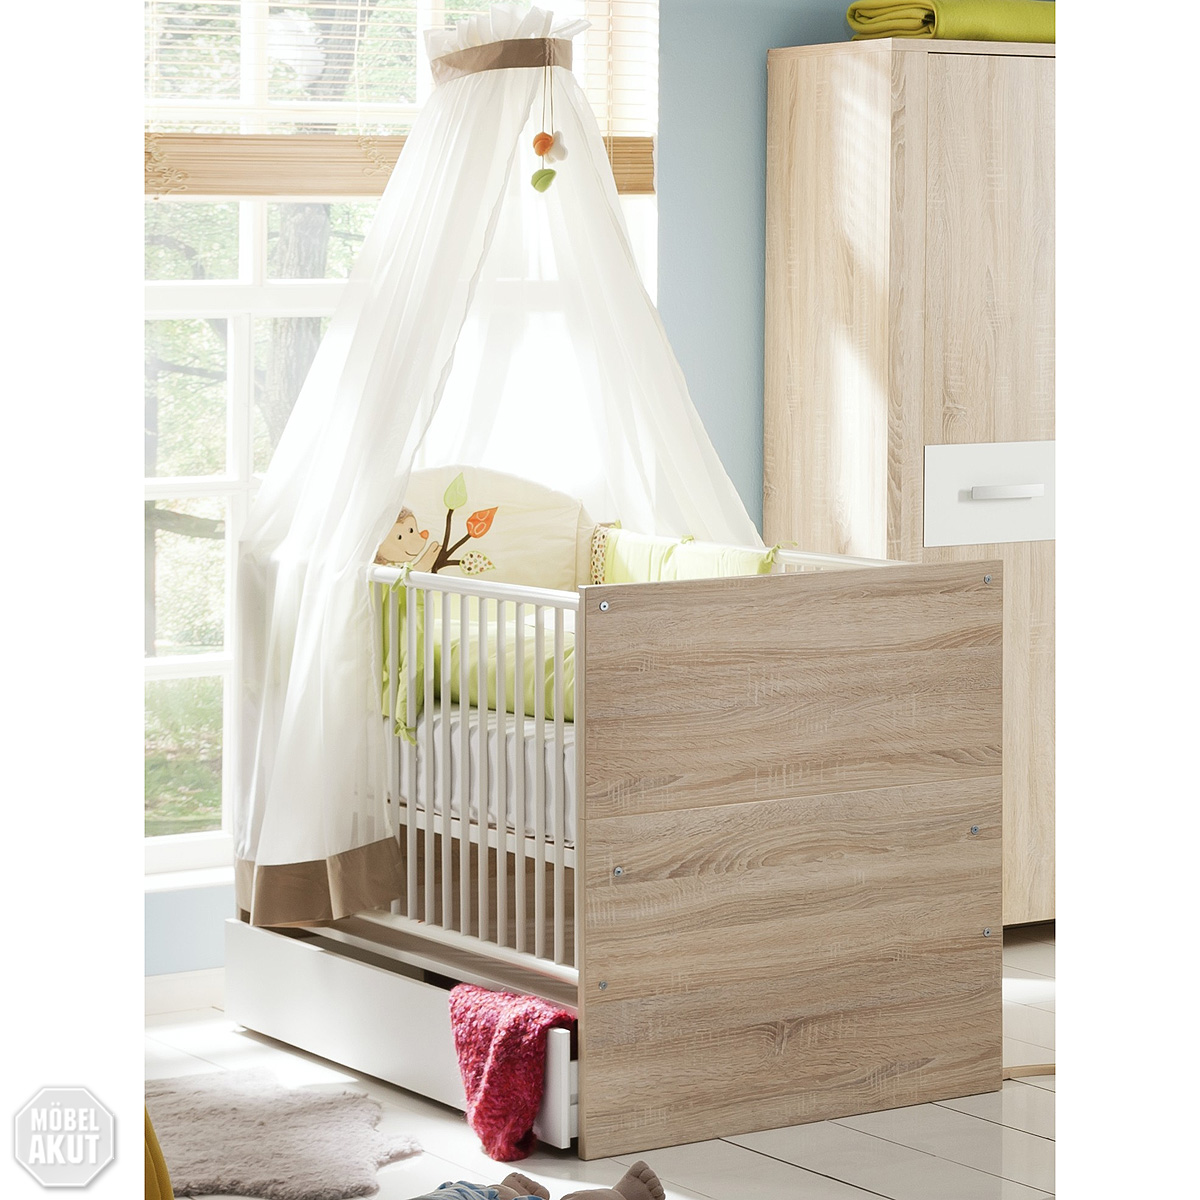 babybett bolek kinderbett juniorbett sonoma eiche s gerau wei ebay. Black Bedroom Furniture Sets. Home Design Ideas